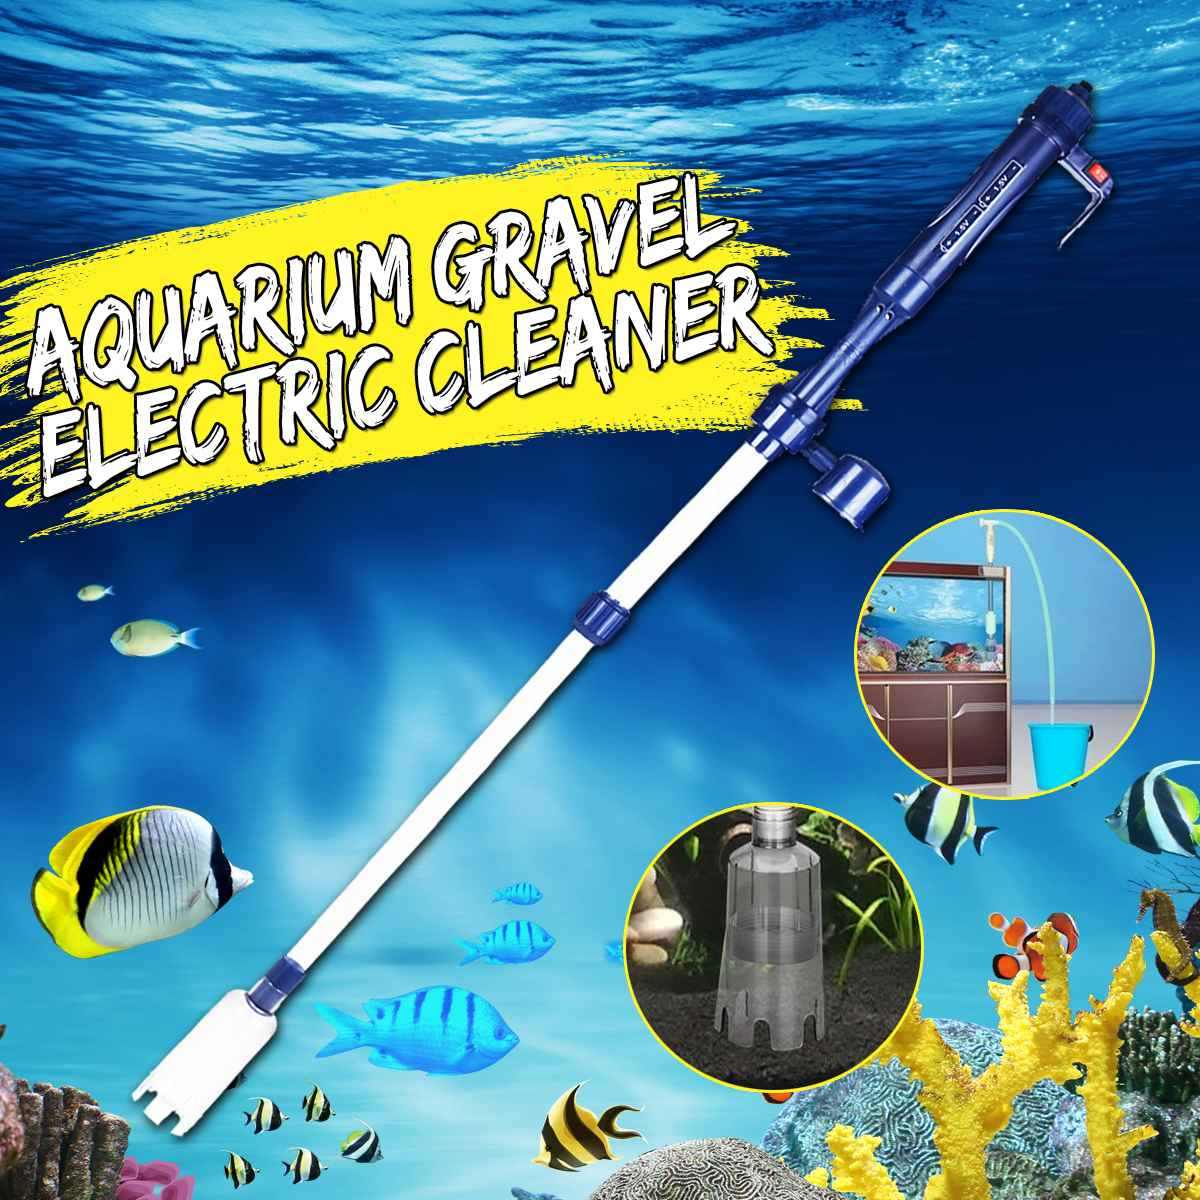 Automatic Electric Aquarium Gravel Cleaner Water Filter Washer Siphon Vacuum Water Pump for Fish Tank Aquarium Cleaner EU 220V